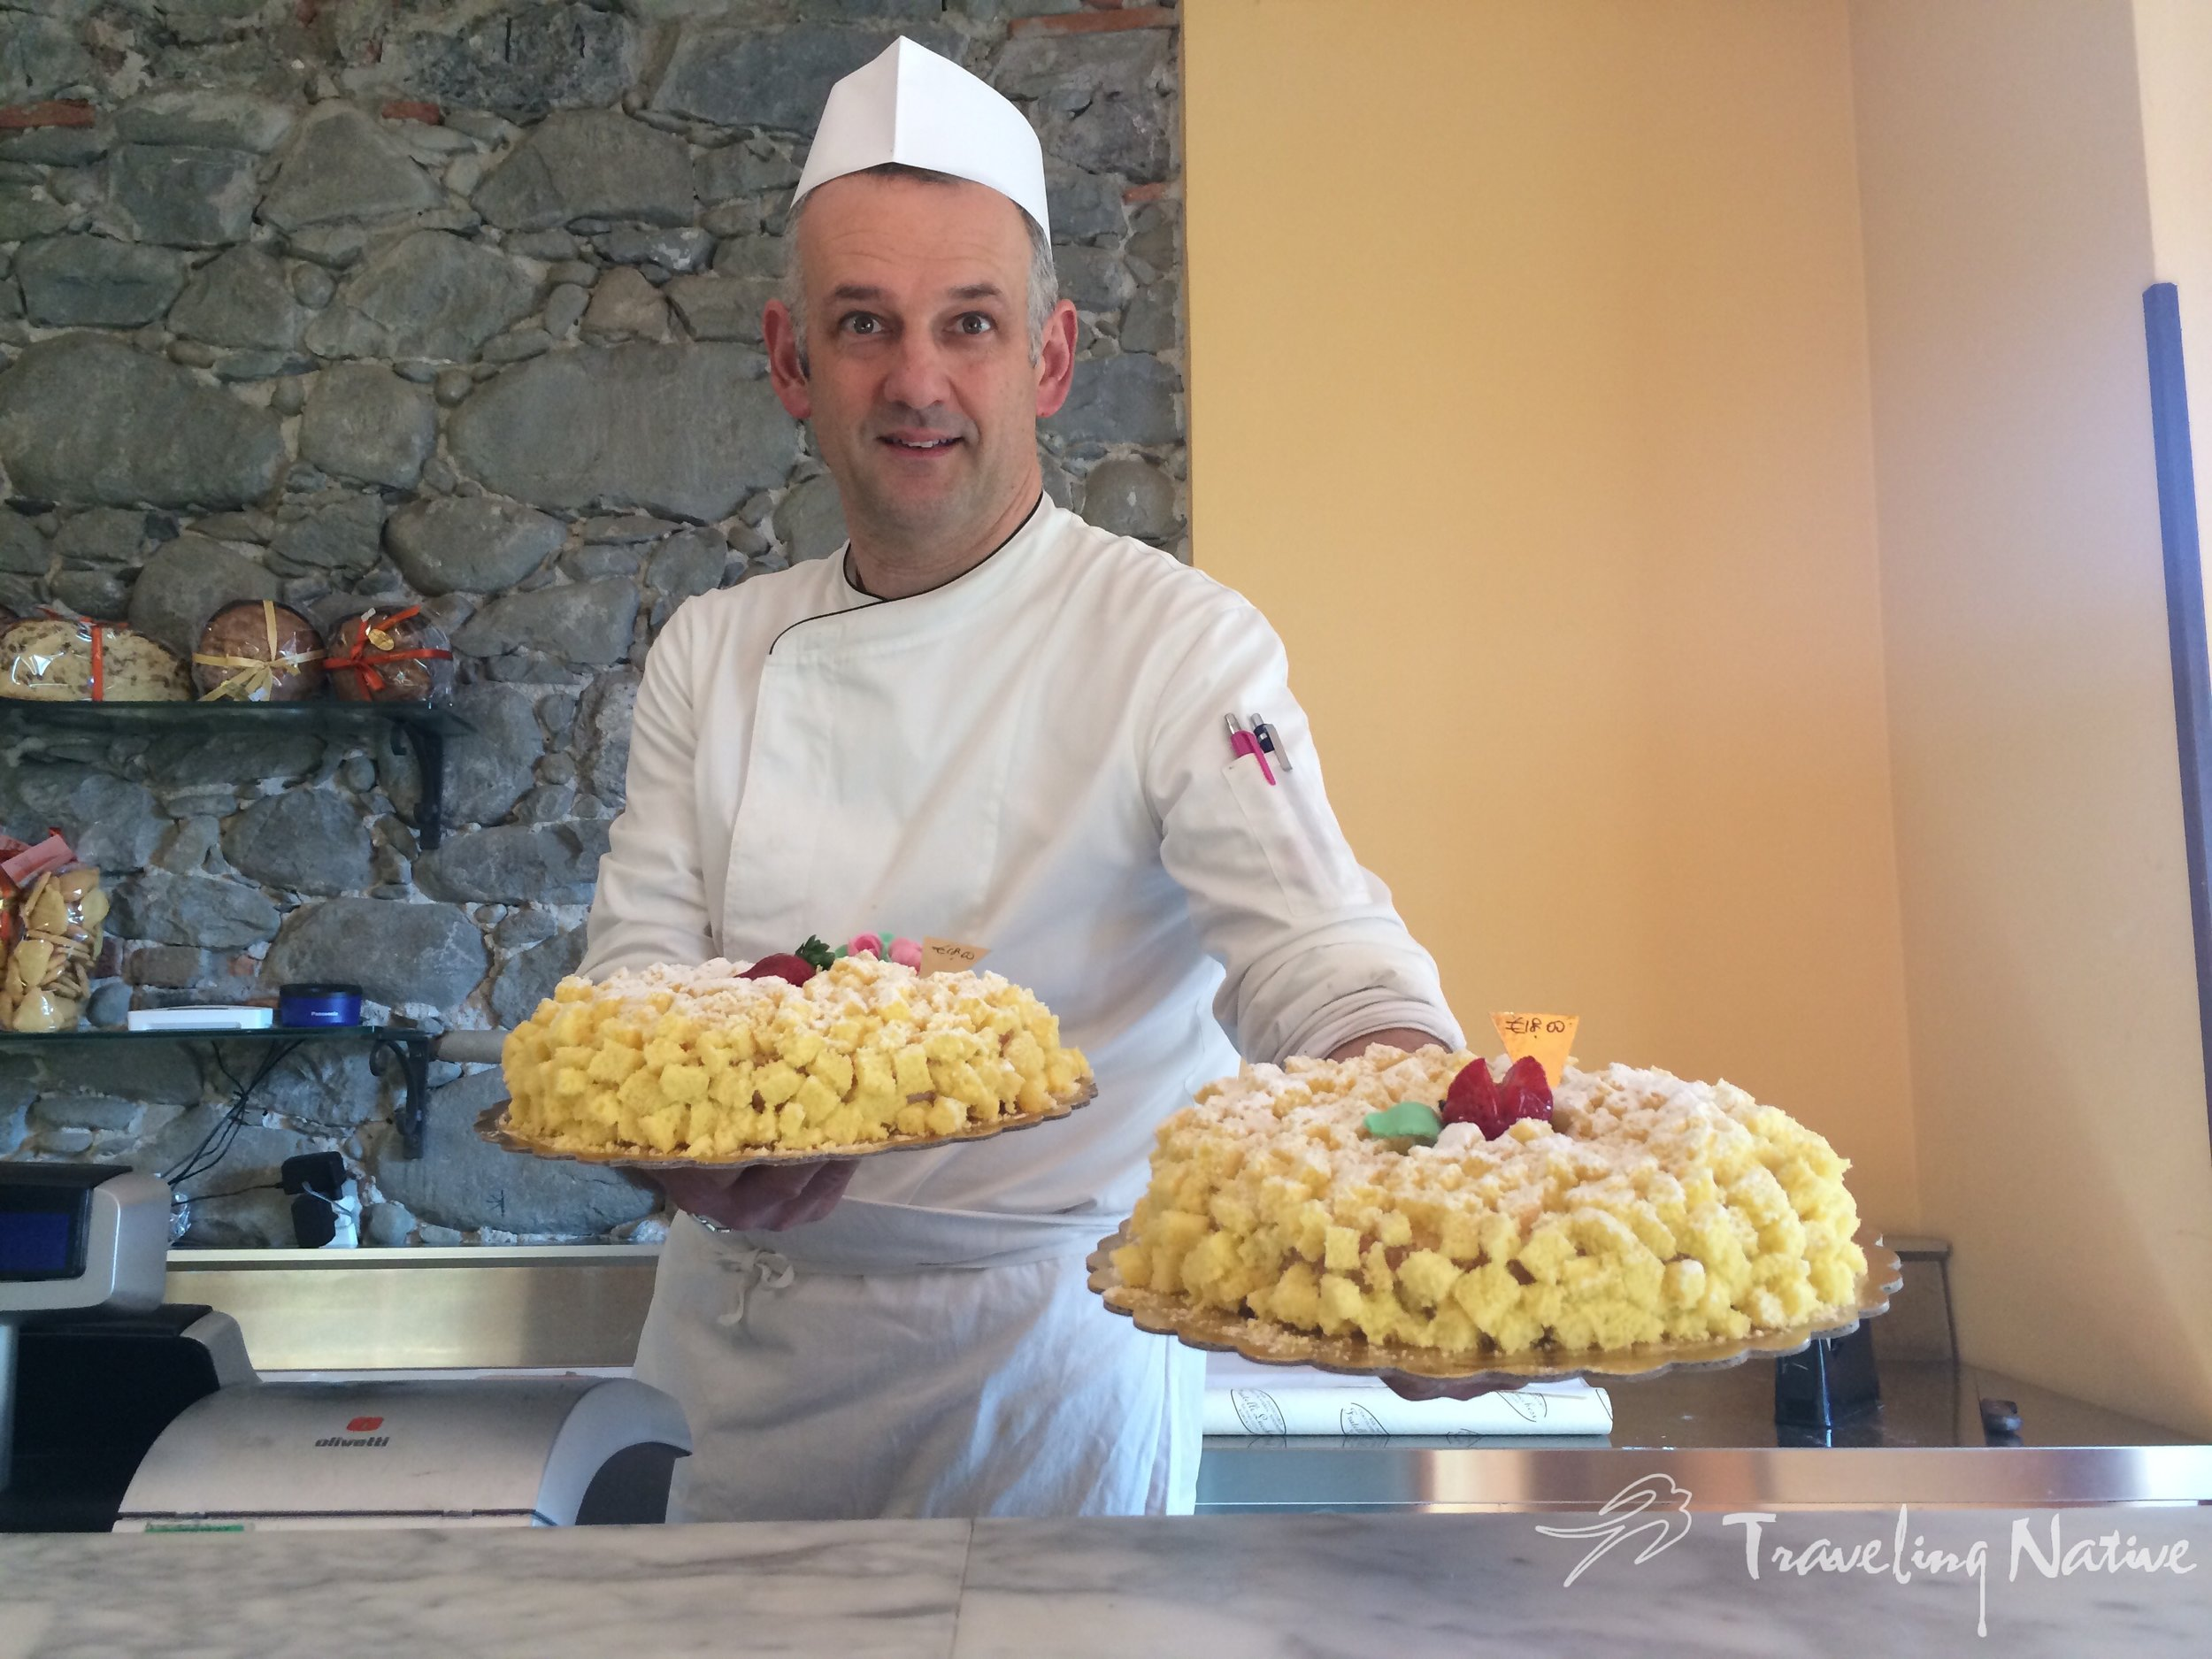 Paolo Lucchesi of Pasticceria Fratelli Lucchesi #sweets #baking #bar #pastrychef #barga